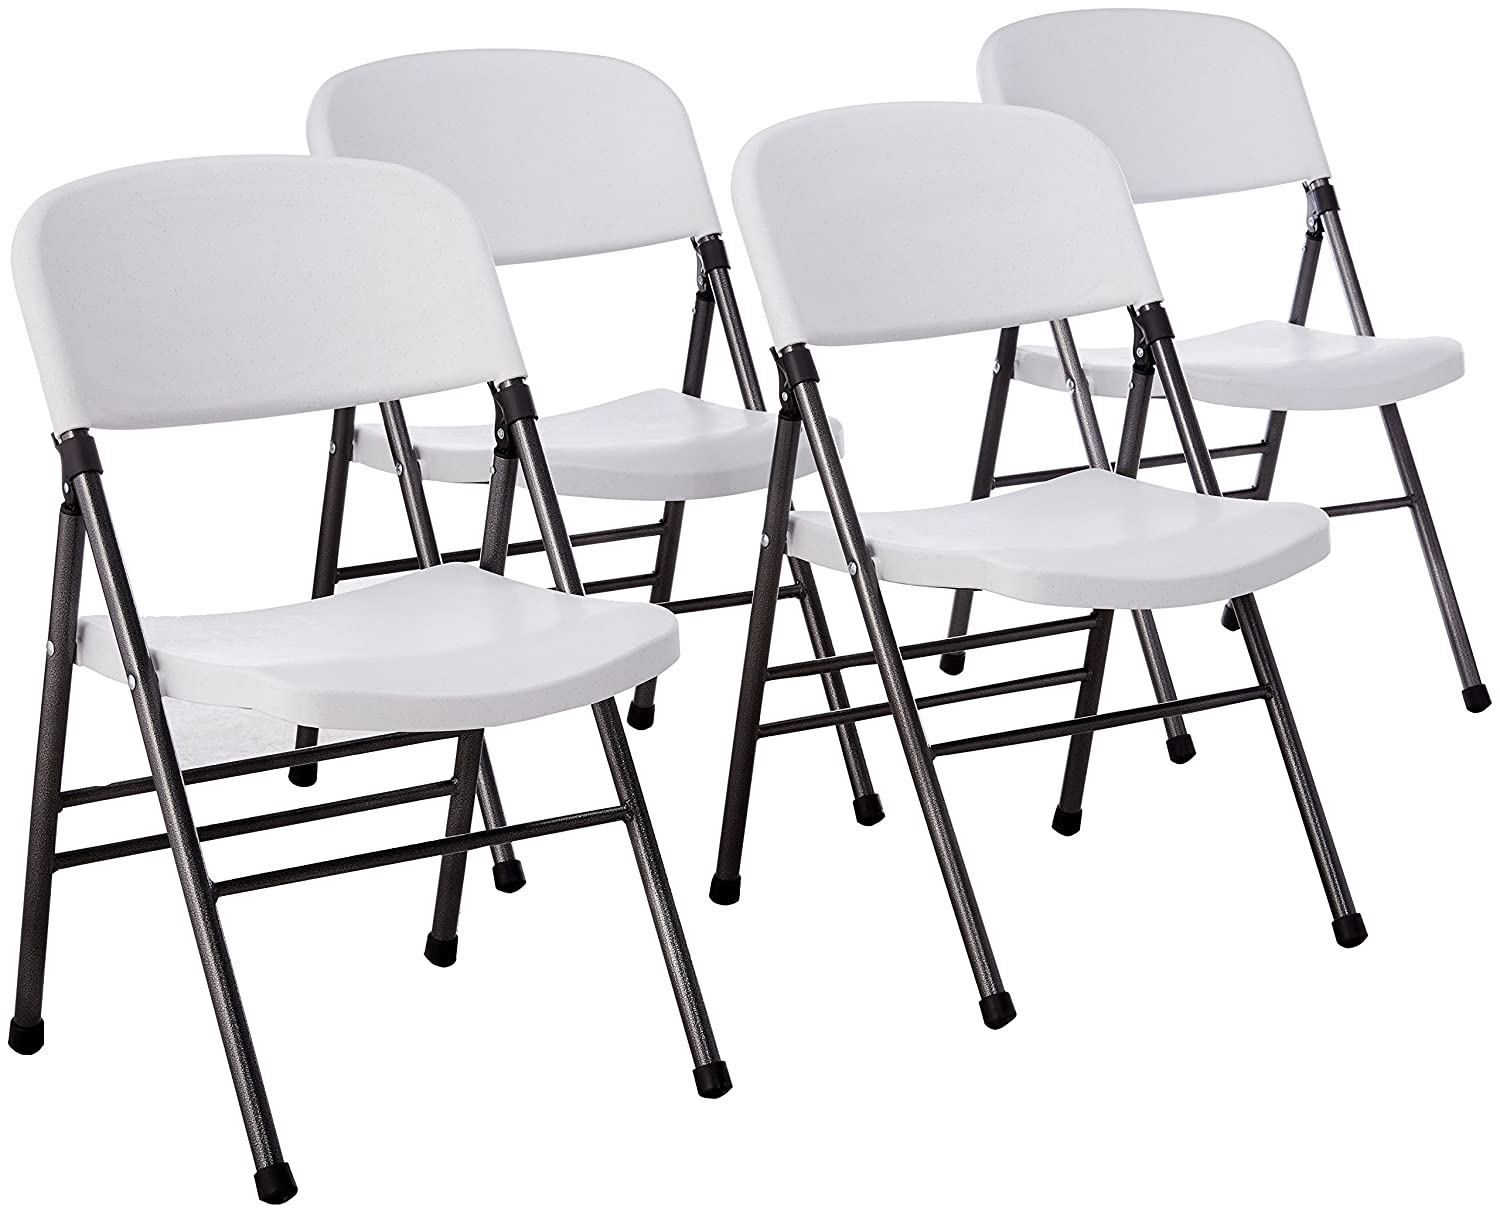 Cosco Resin 4-Pack Folding Chair with Molded Seat and Back